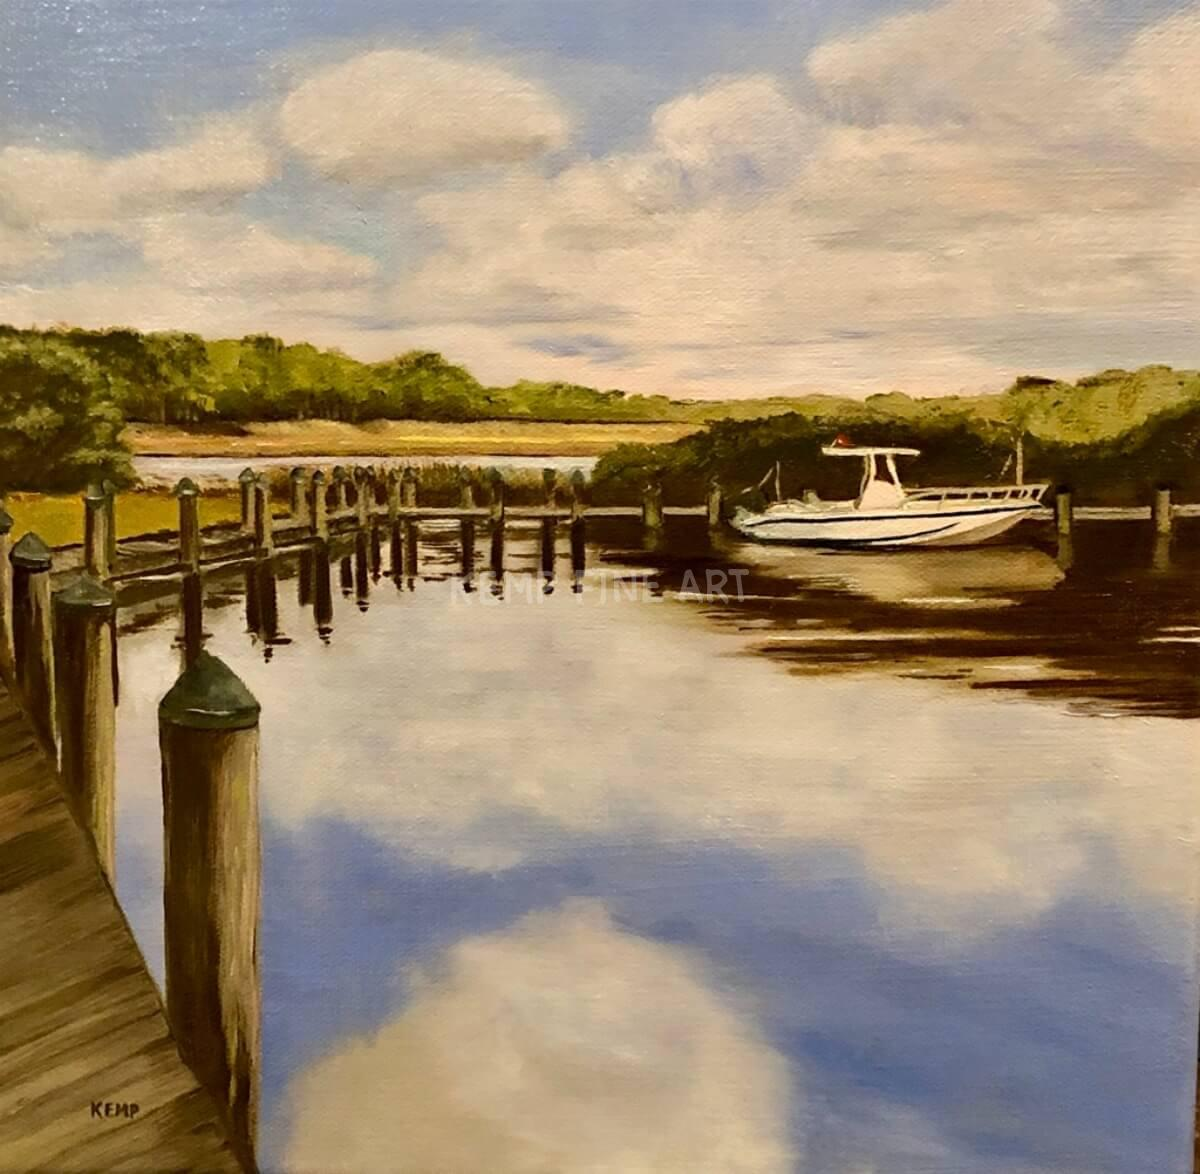 Docked - Henlopen Acres | Oil on Canvas - by Jim Kemp